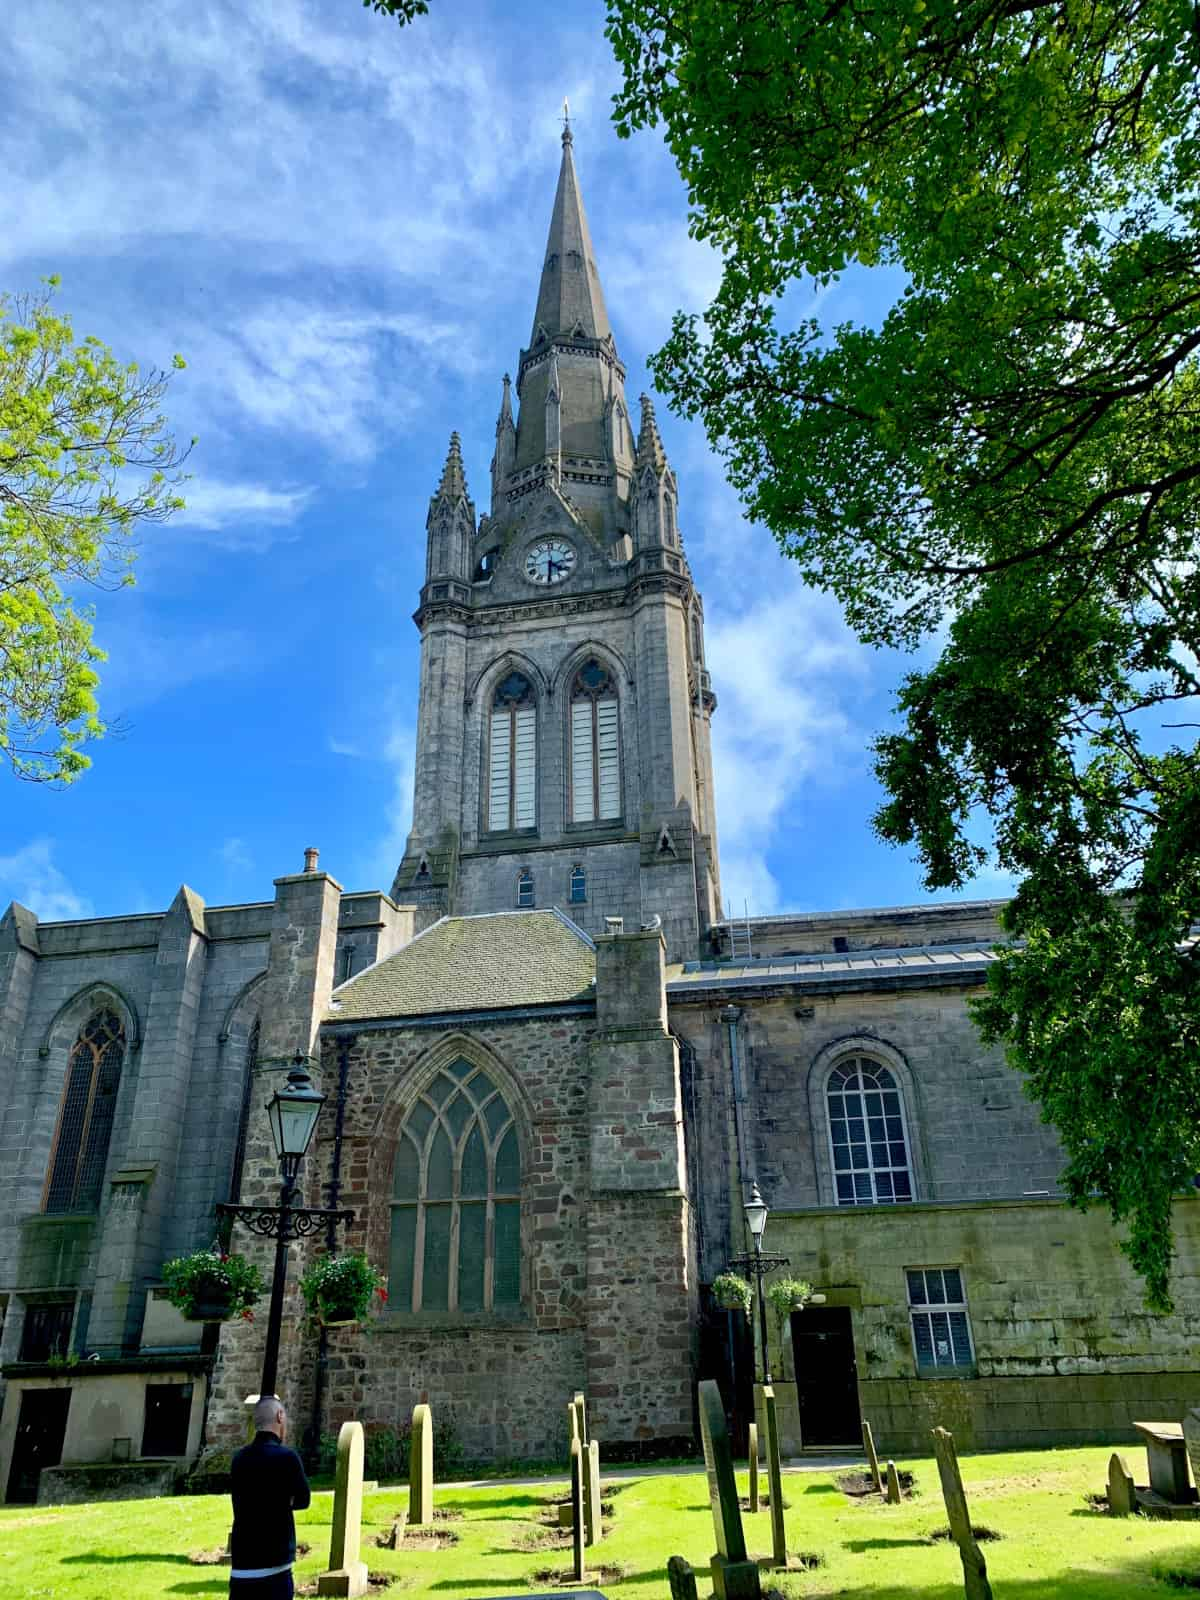 Beautiful St. Nicholas Kirk in the heart of Aberdeen